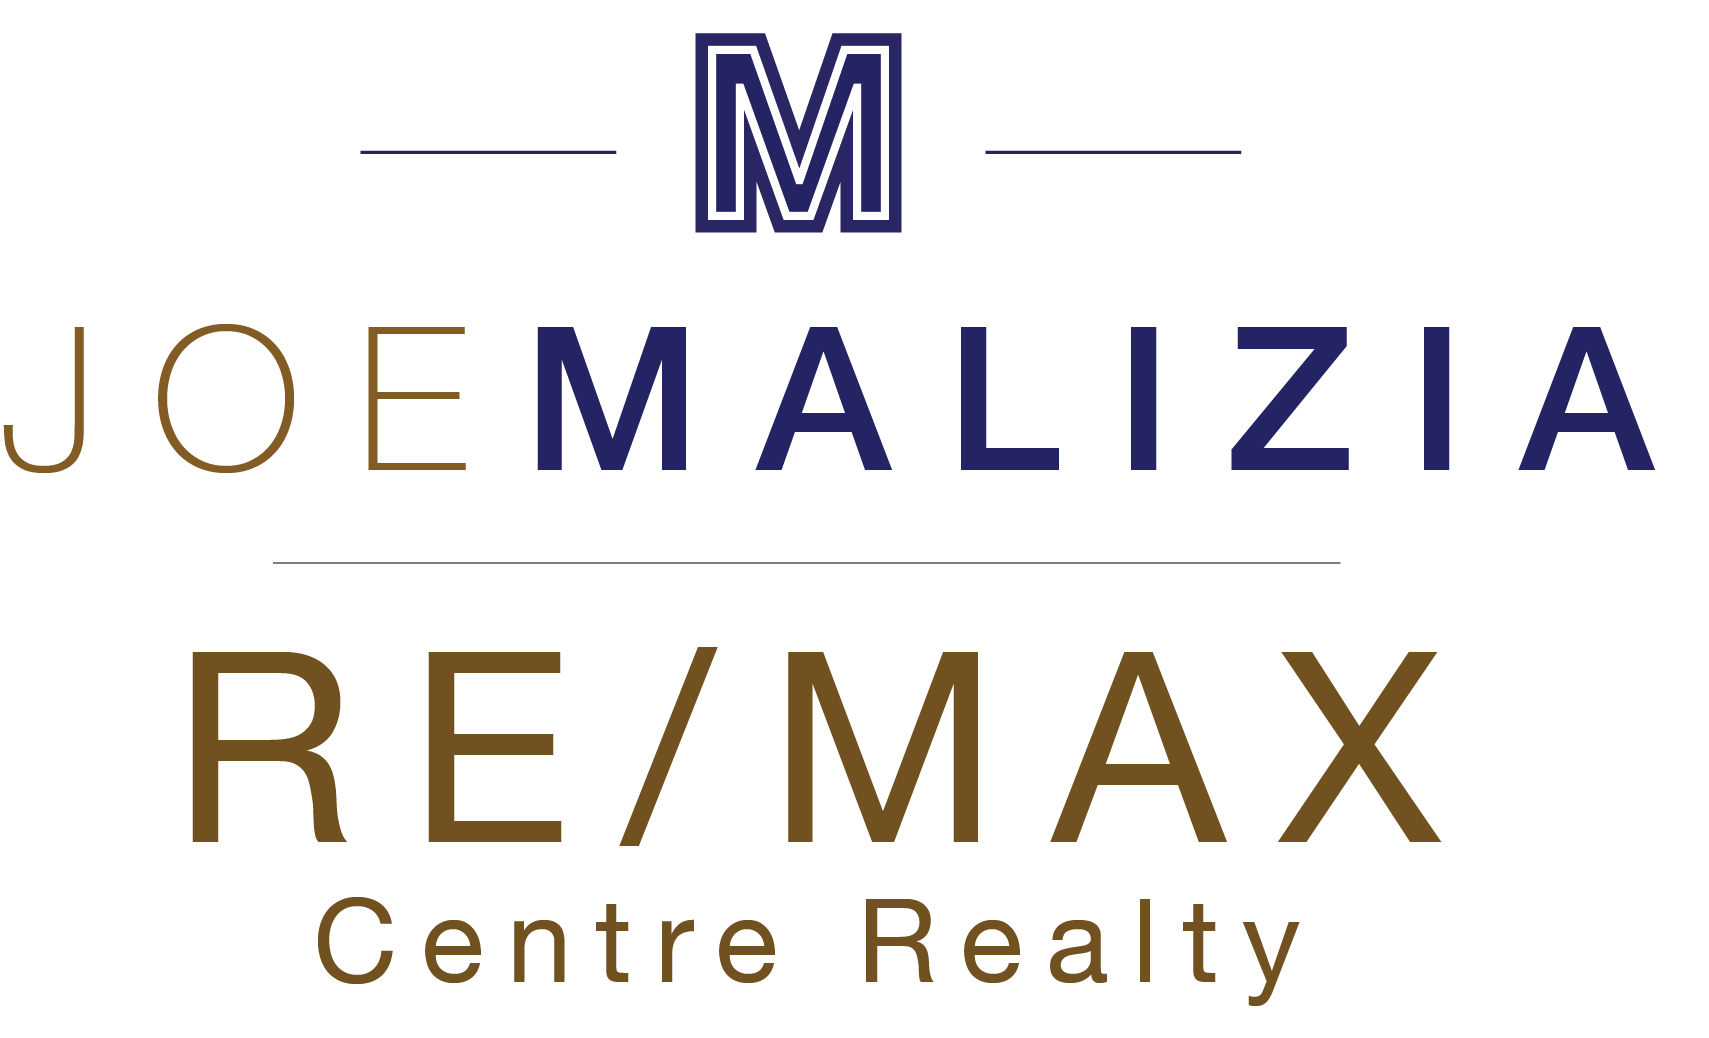 Joe Malizia, Realtor with RE/MAX Centre Realty